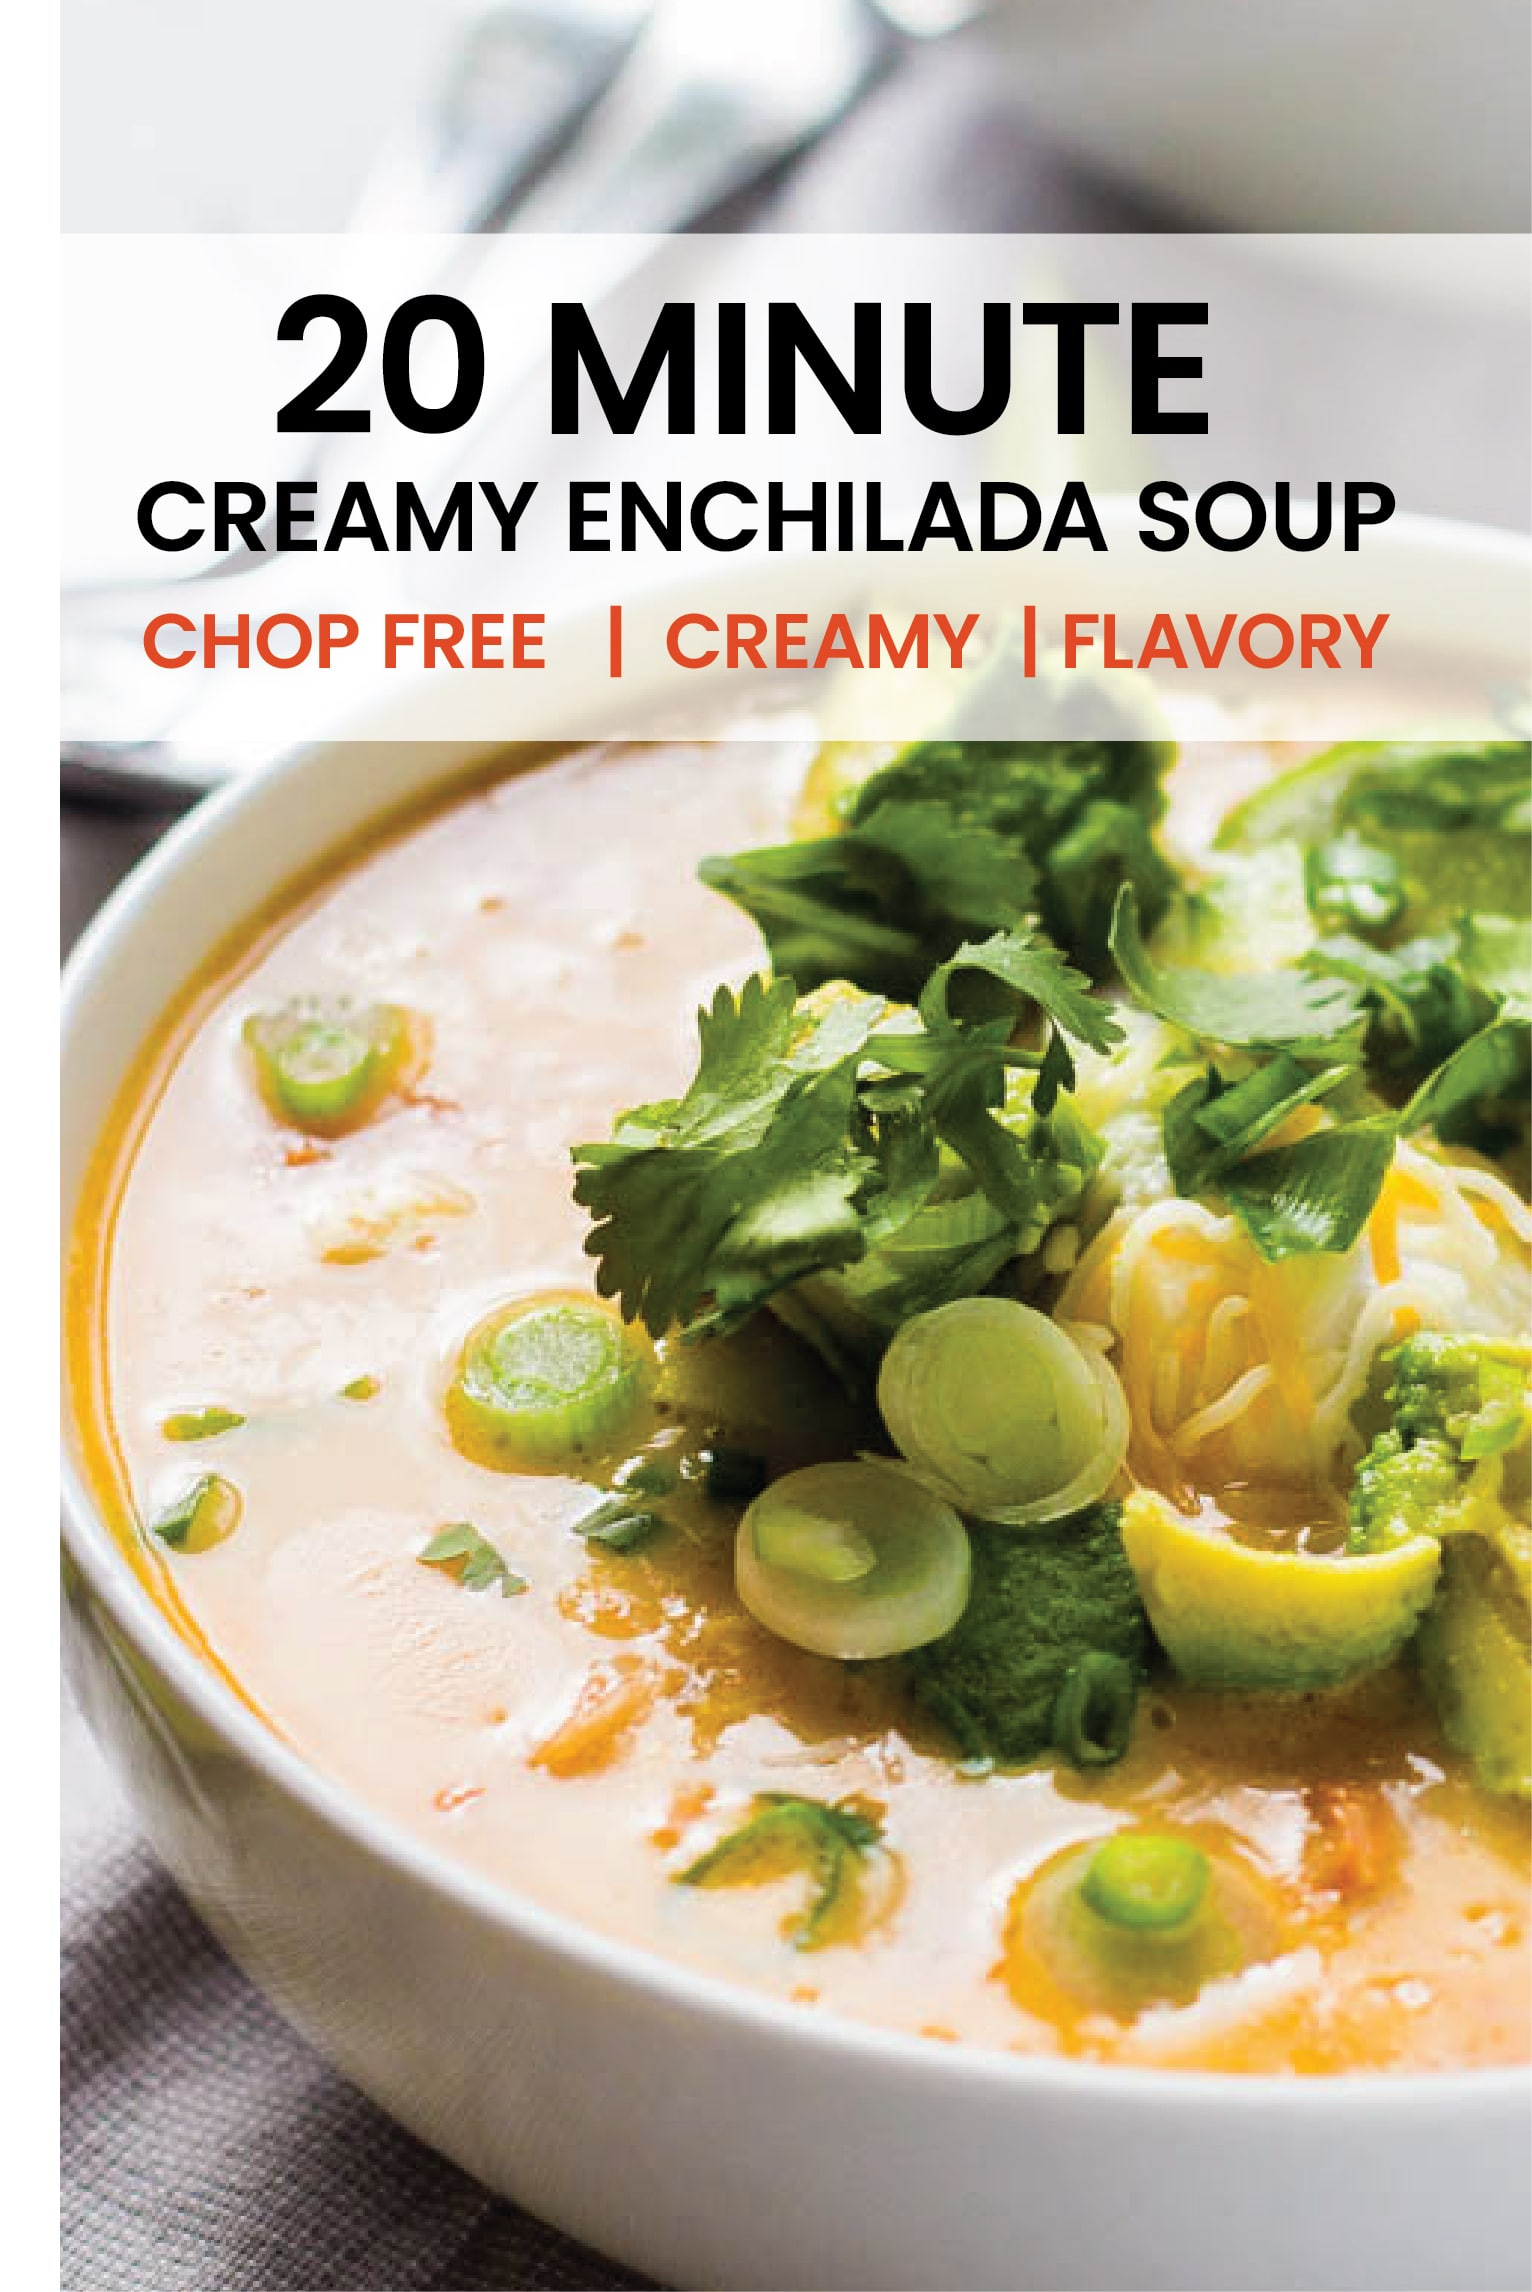 This 20 Minute Creamy Enchilada Soup comes together in JUST 20 minutes from start tofinish #creamysoup